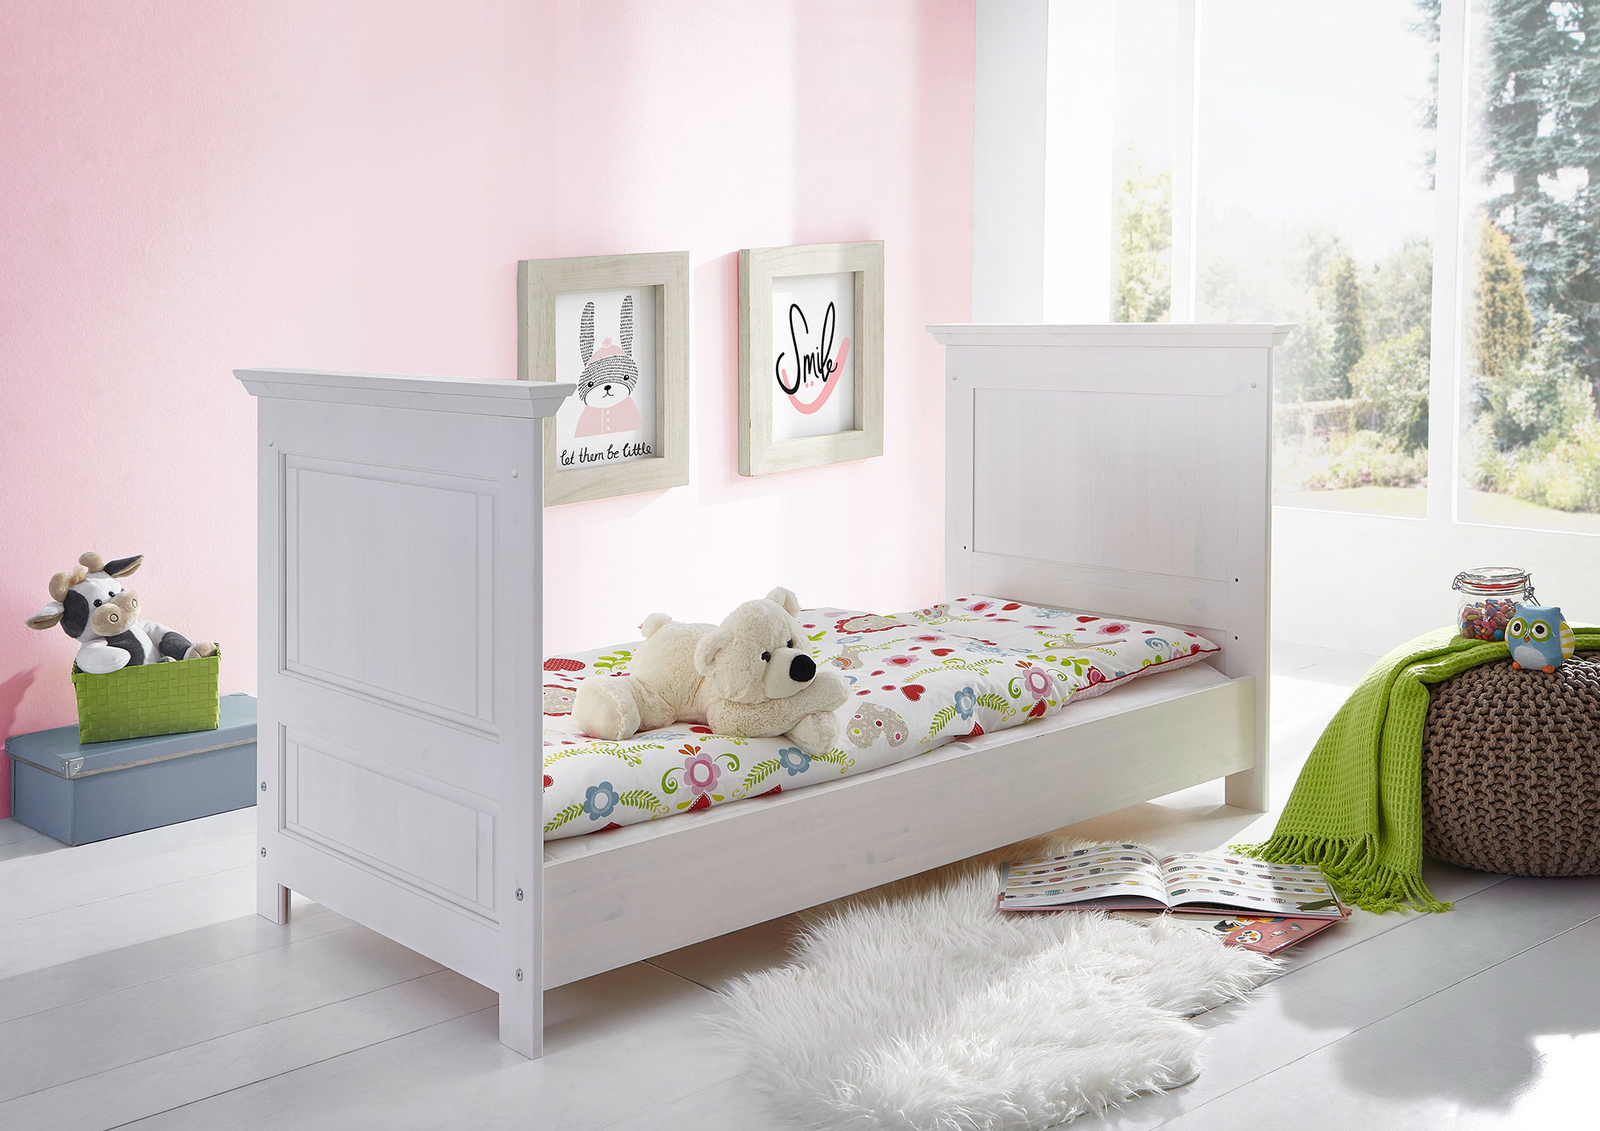 babyzimmer odette kiefer massiv von g k g nstig bestellen. Black Bedroom Furniture Sets. Home Design Ideas